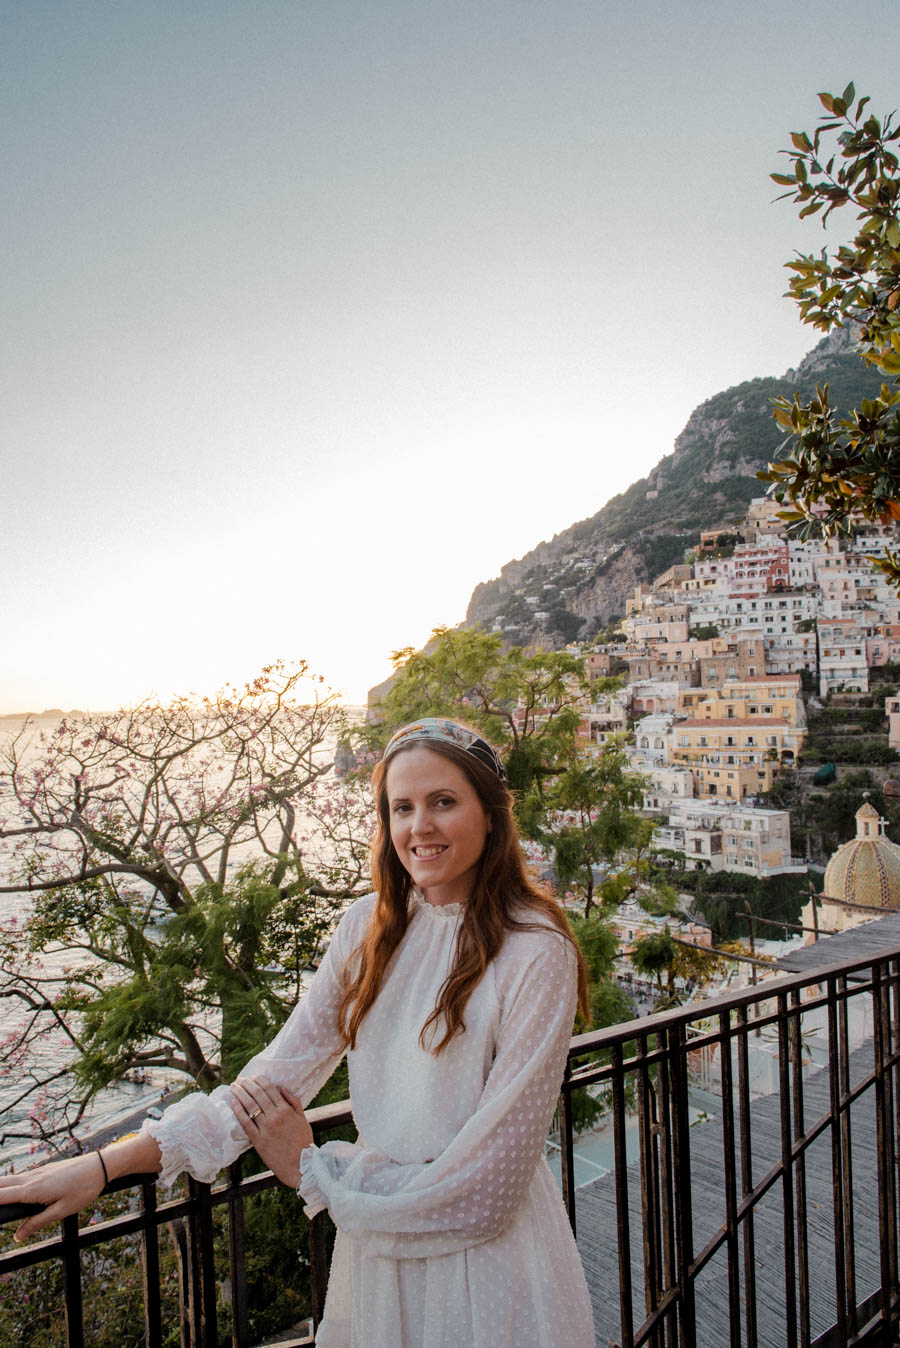 Discover where the best photo locations are in Positano. Get the best photos for Instagram while on holiday in Positano